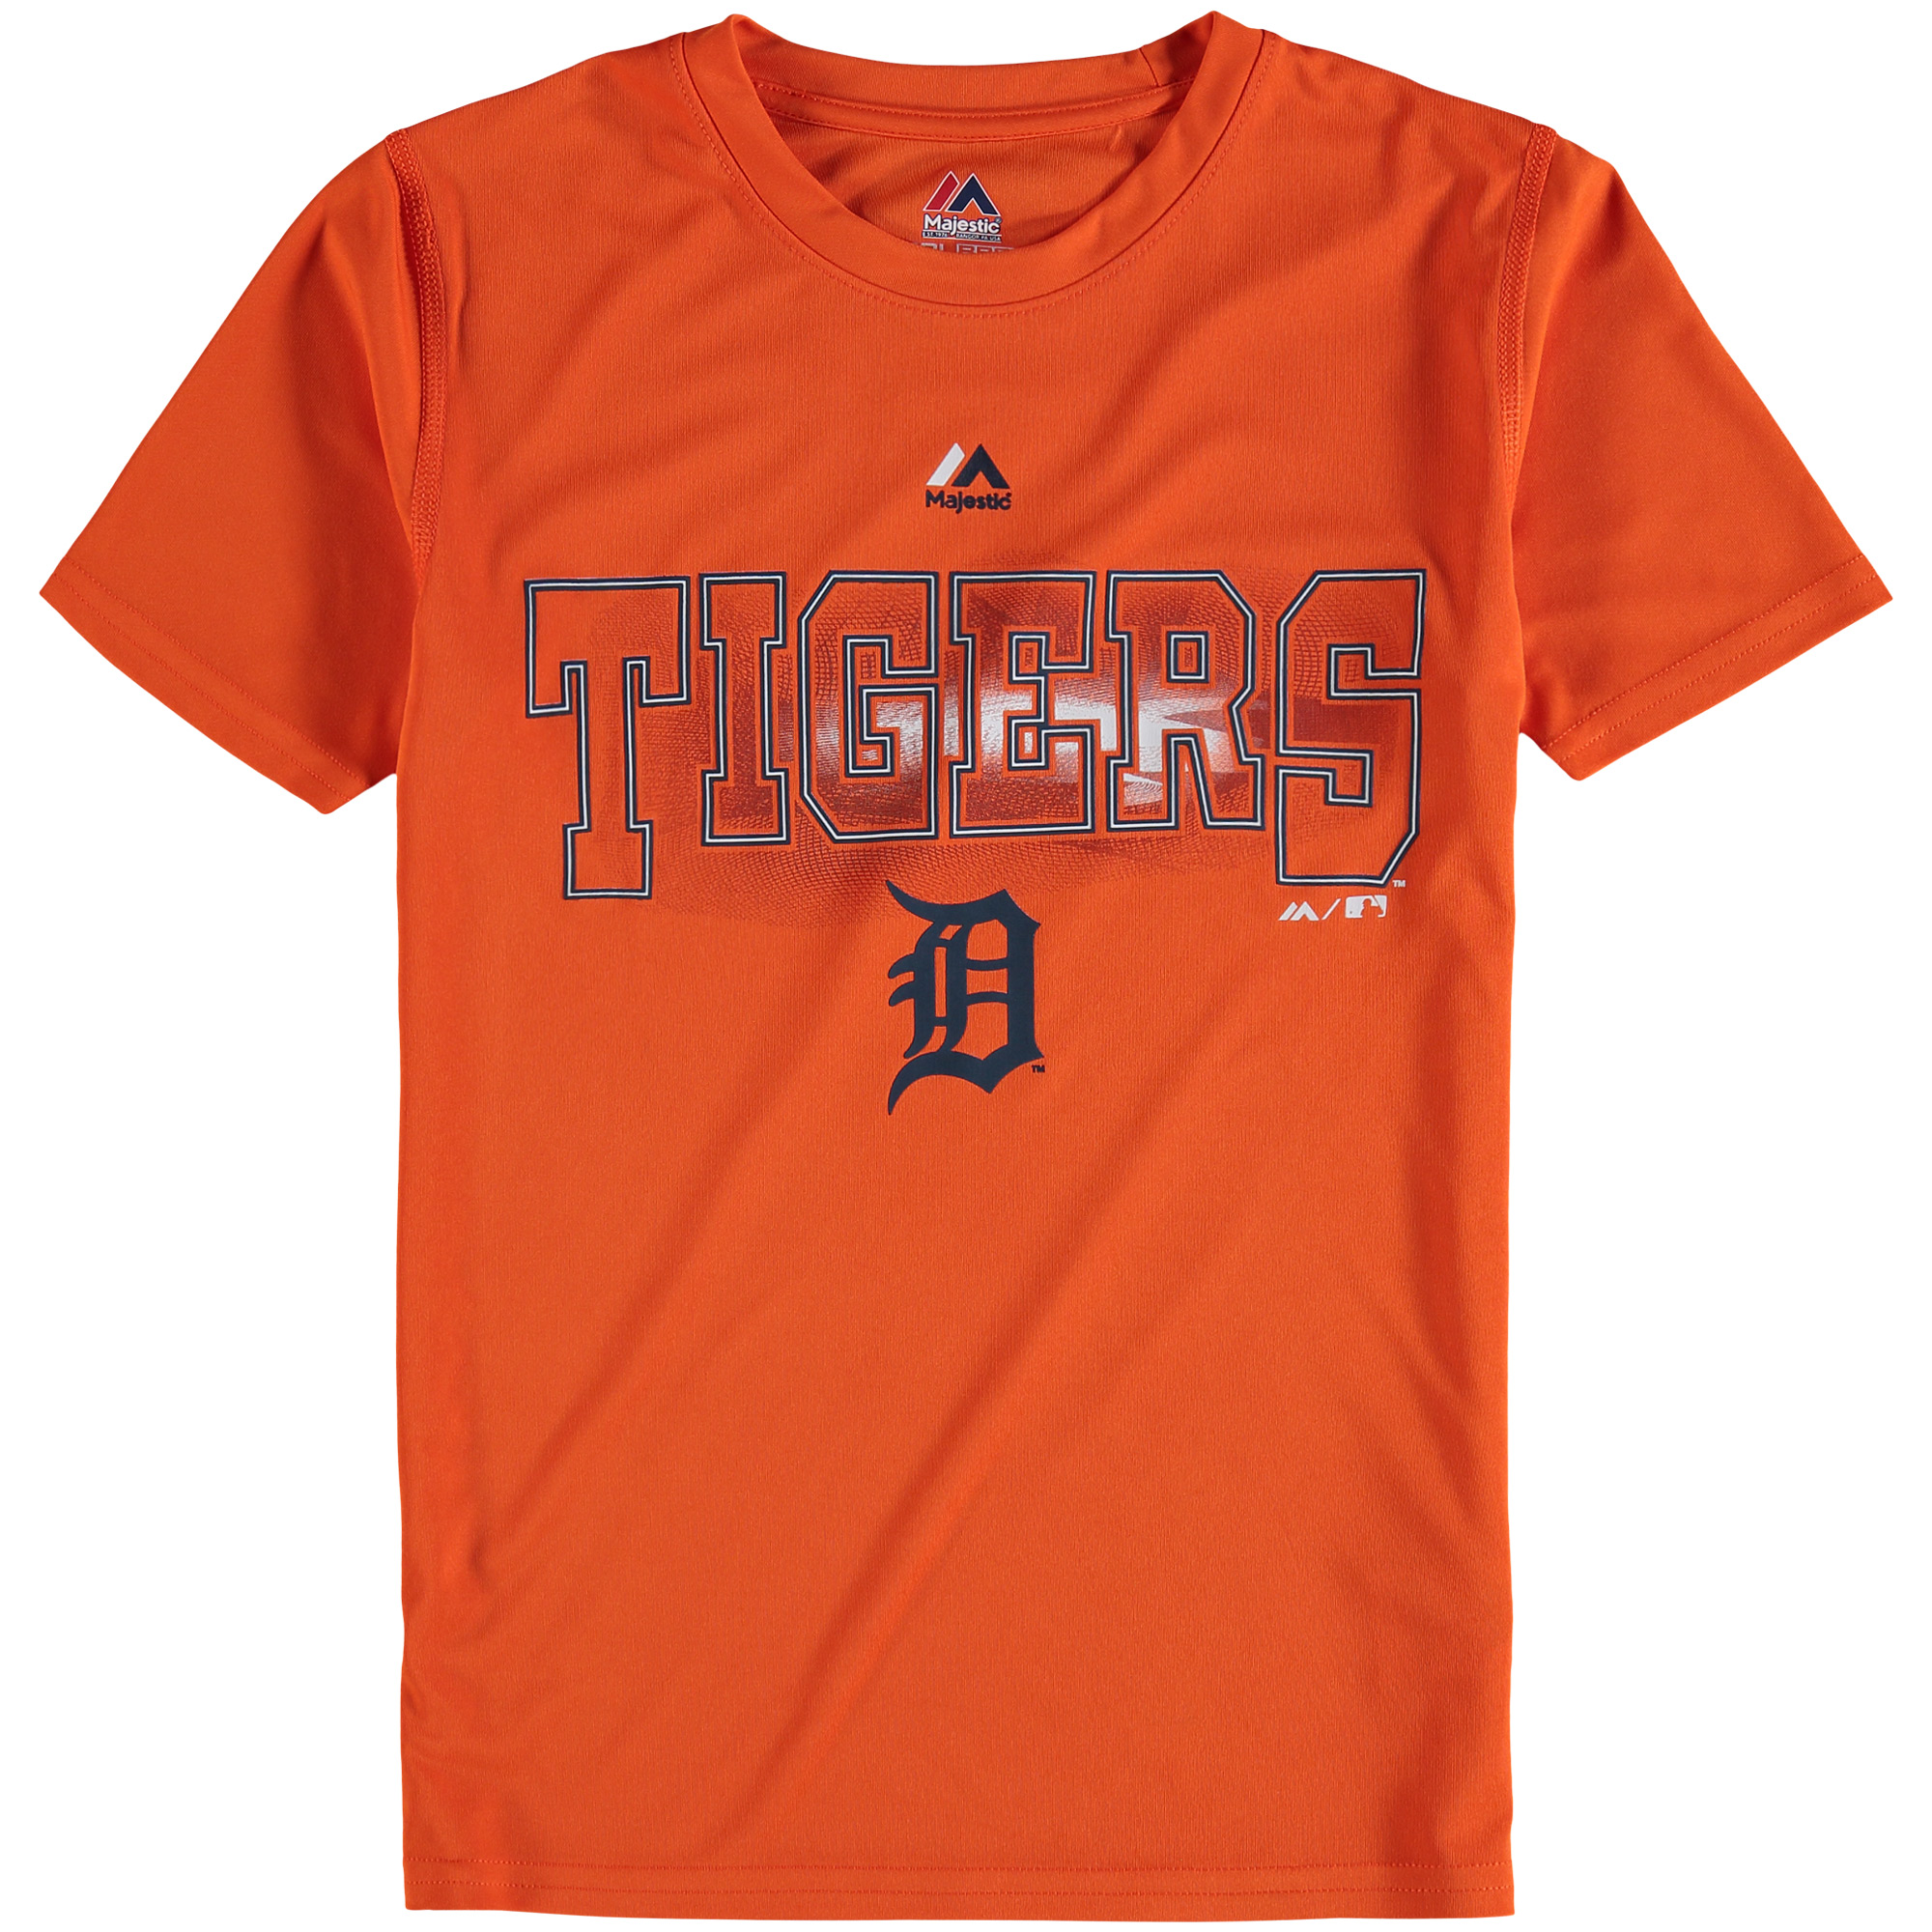 Detroit Tigers Majestic Youth Light Up the Field T-Shirt - Orange